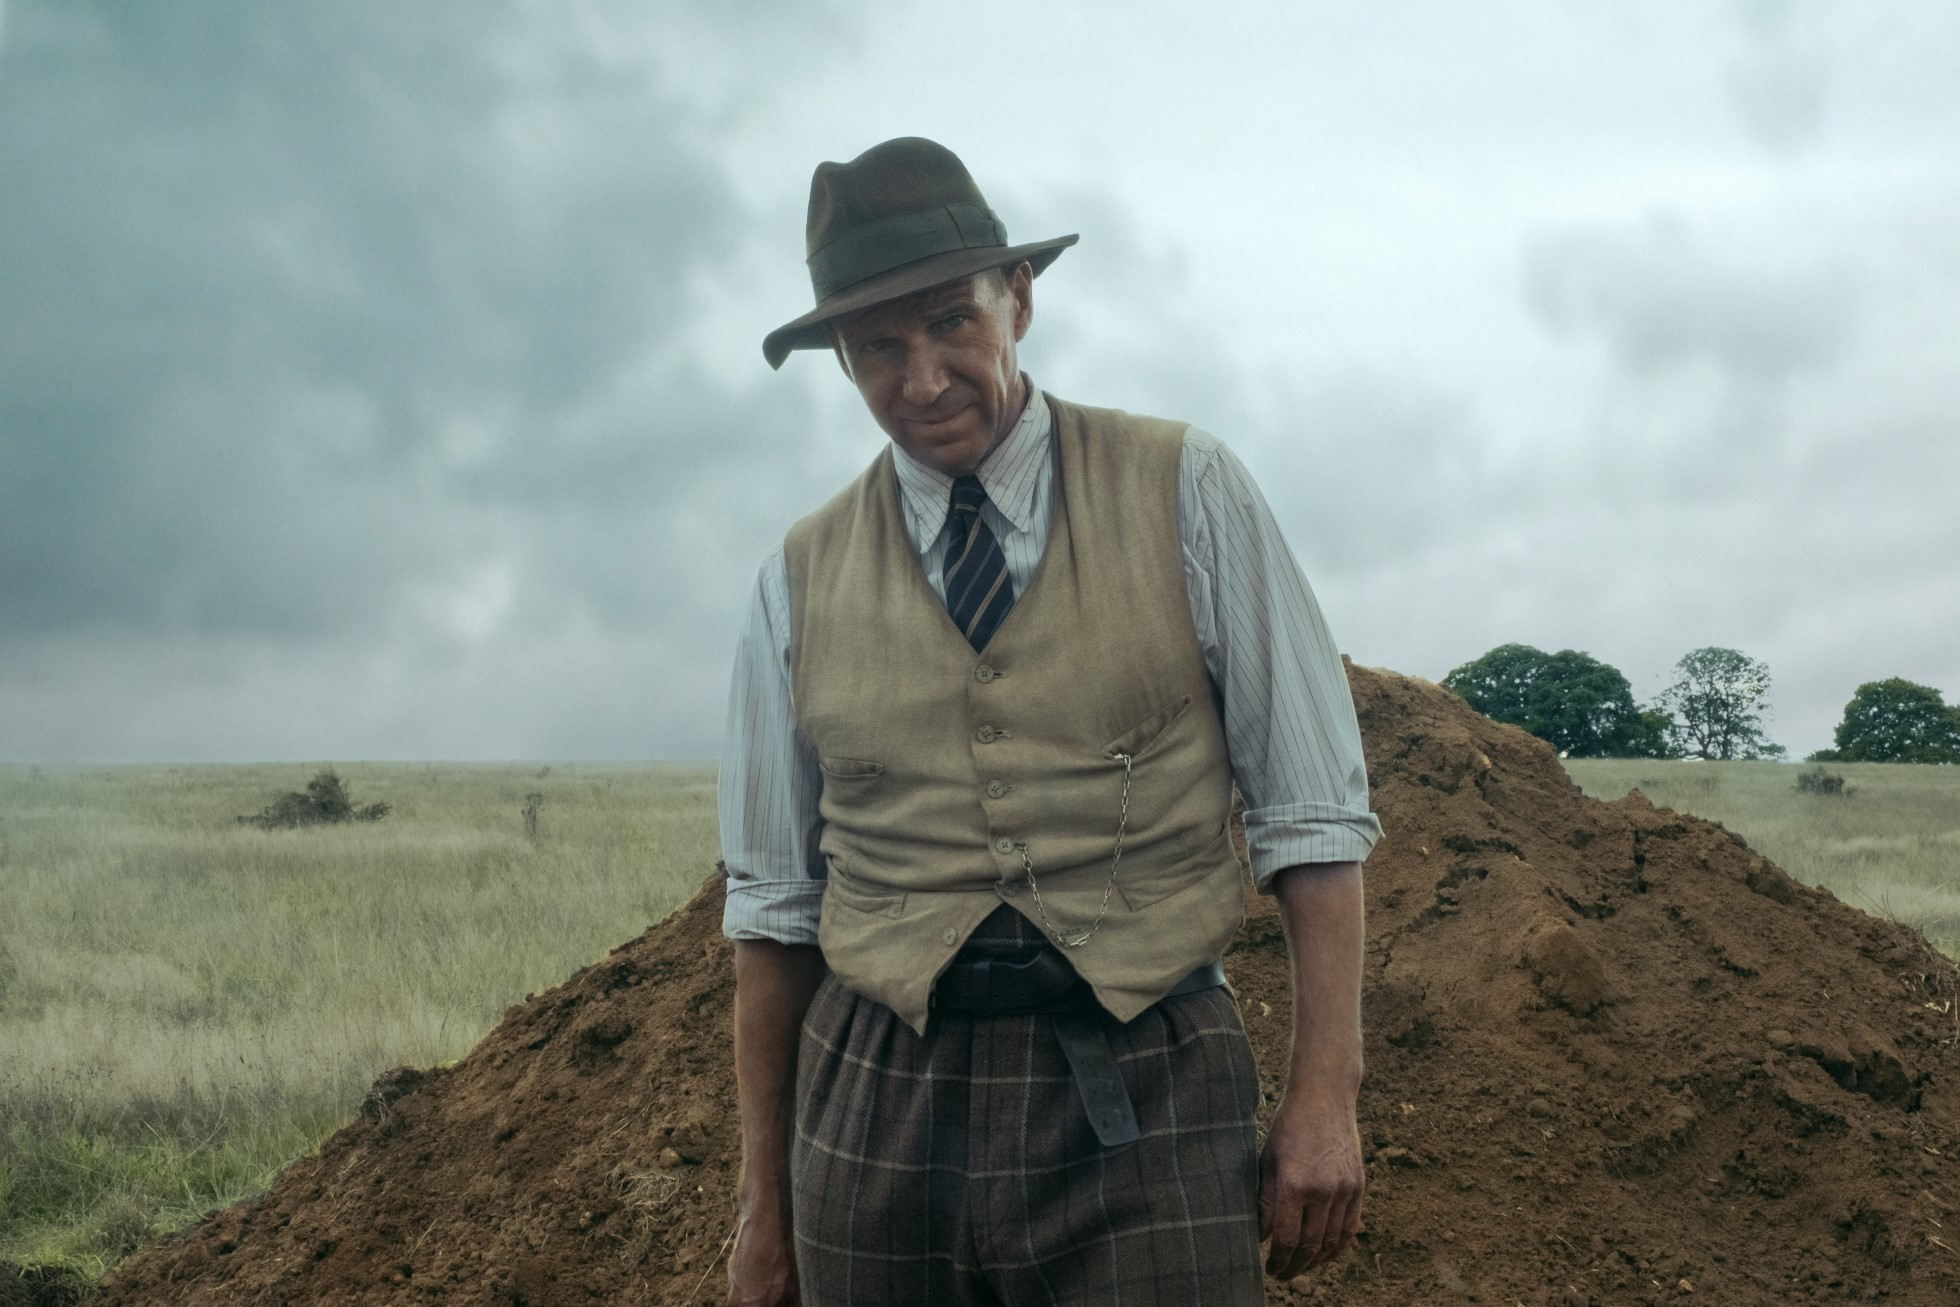 Photograph still from the film. The character of Basil Brown, played by Ralph Fiennes, stands in front of a large mound of soil. He wears brown check trousers, a cream waistcoat, blue shirt with the sleeves rolled up, a striped tie and brown hat. Behind him is a field of long glass and the sky is grey.